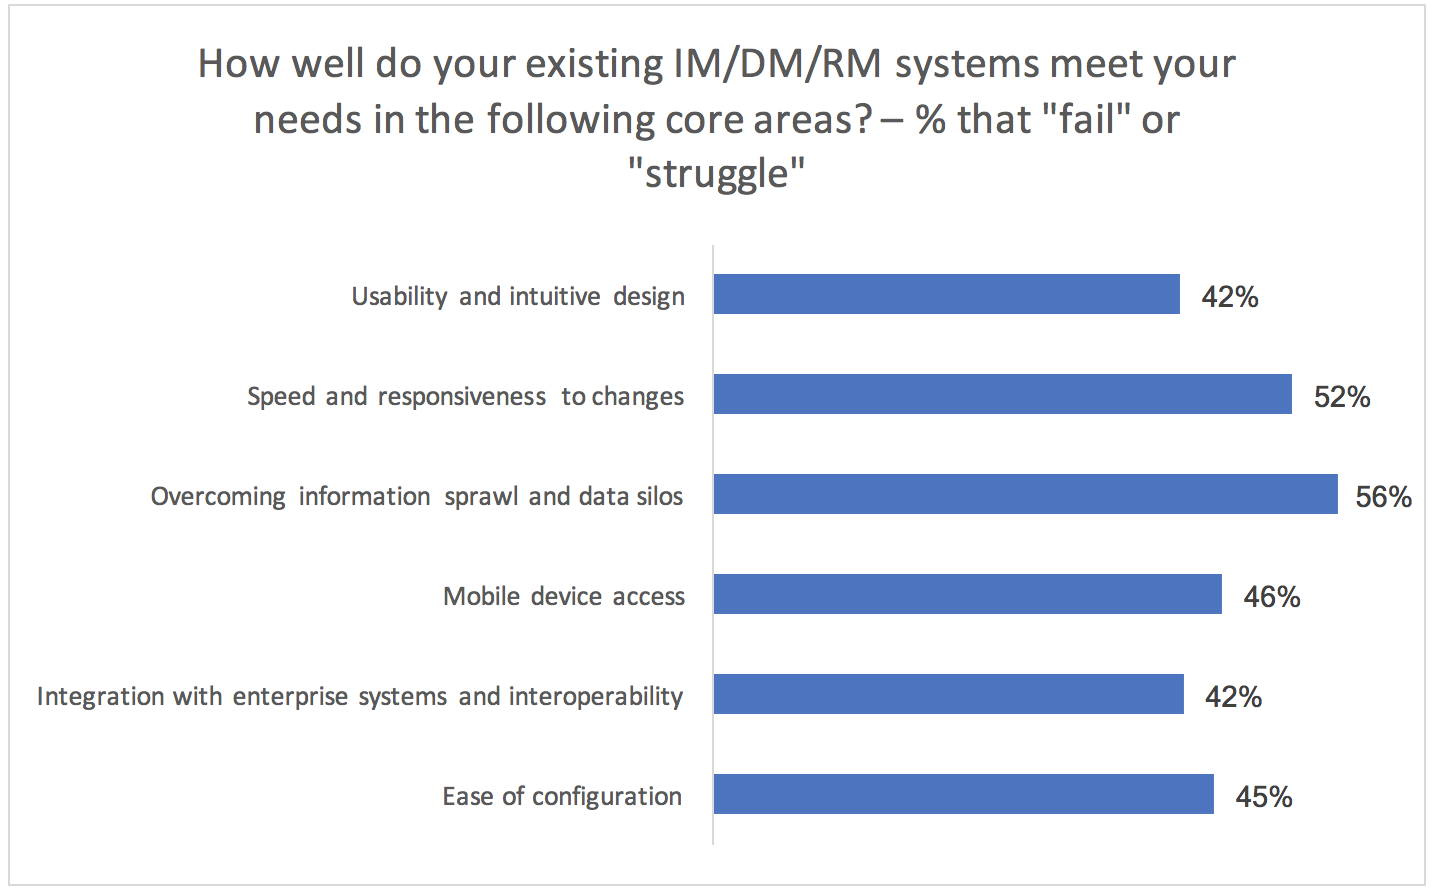 AIIM survey showing 40% of companies think systems are failing